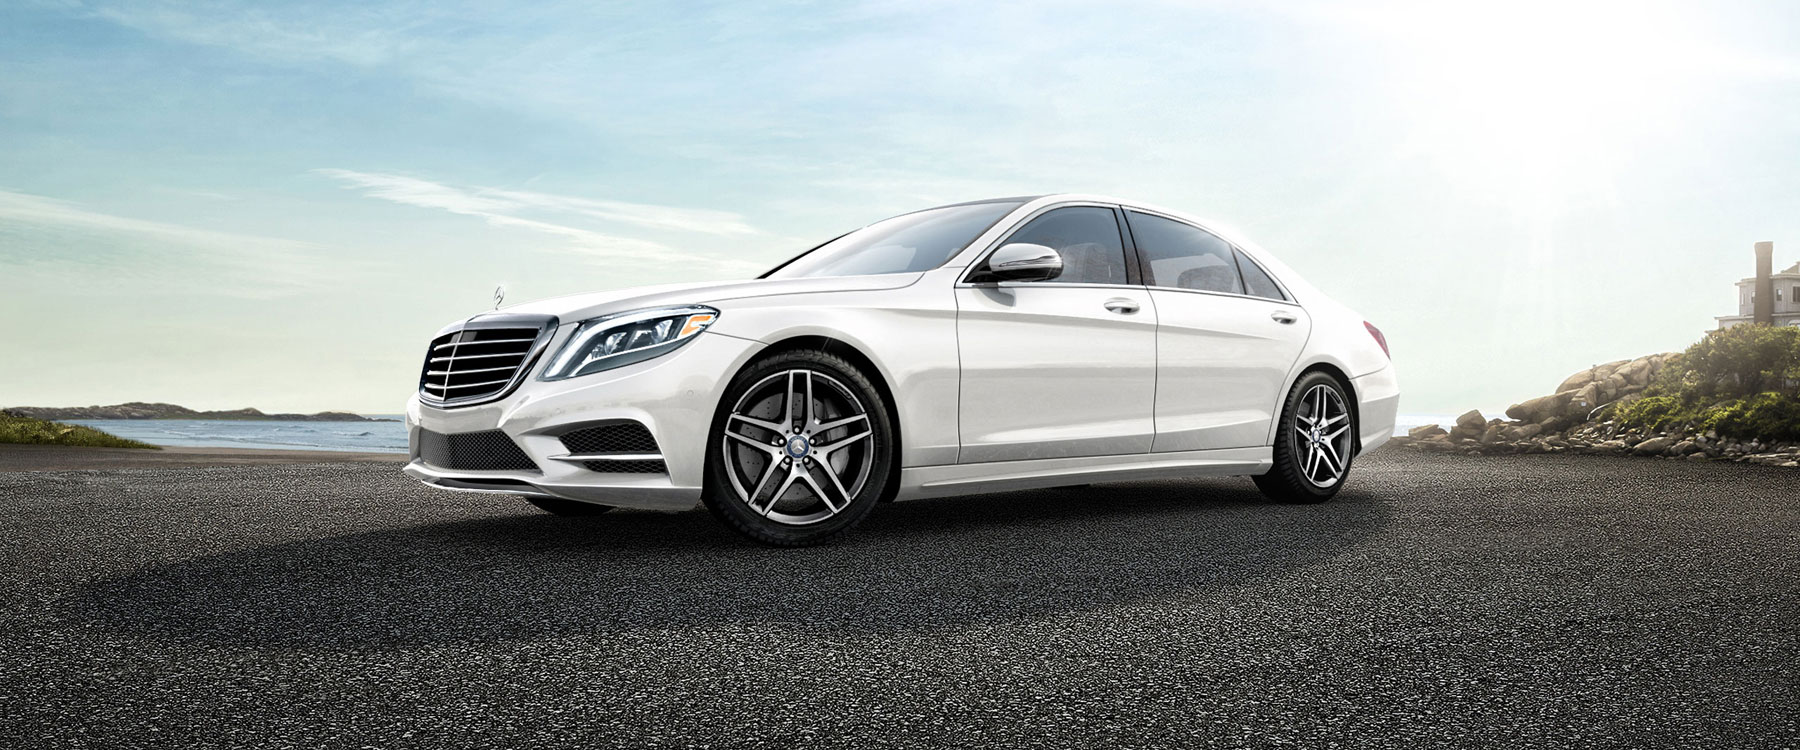 Wondrous The Unrelenting Power And Style Of The 2017 Mercedes Benz S 550 Wiring Cloud Philuggs Outletorg